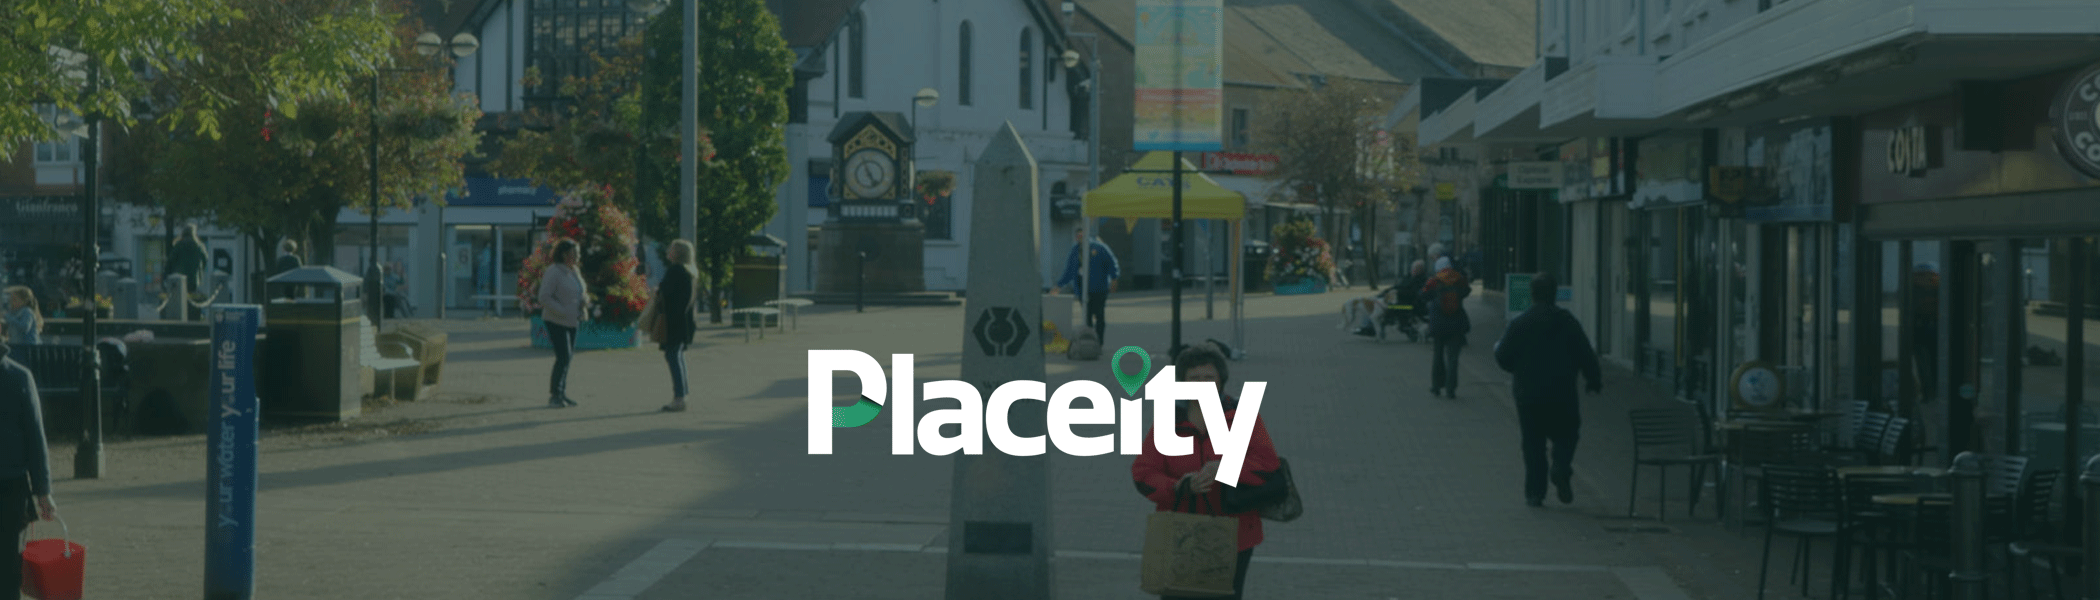 Launch of Placeity For Towns